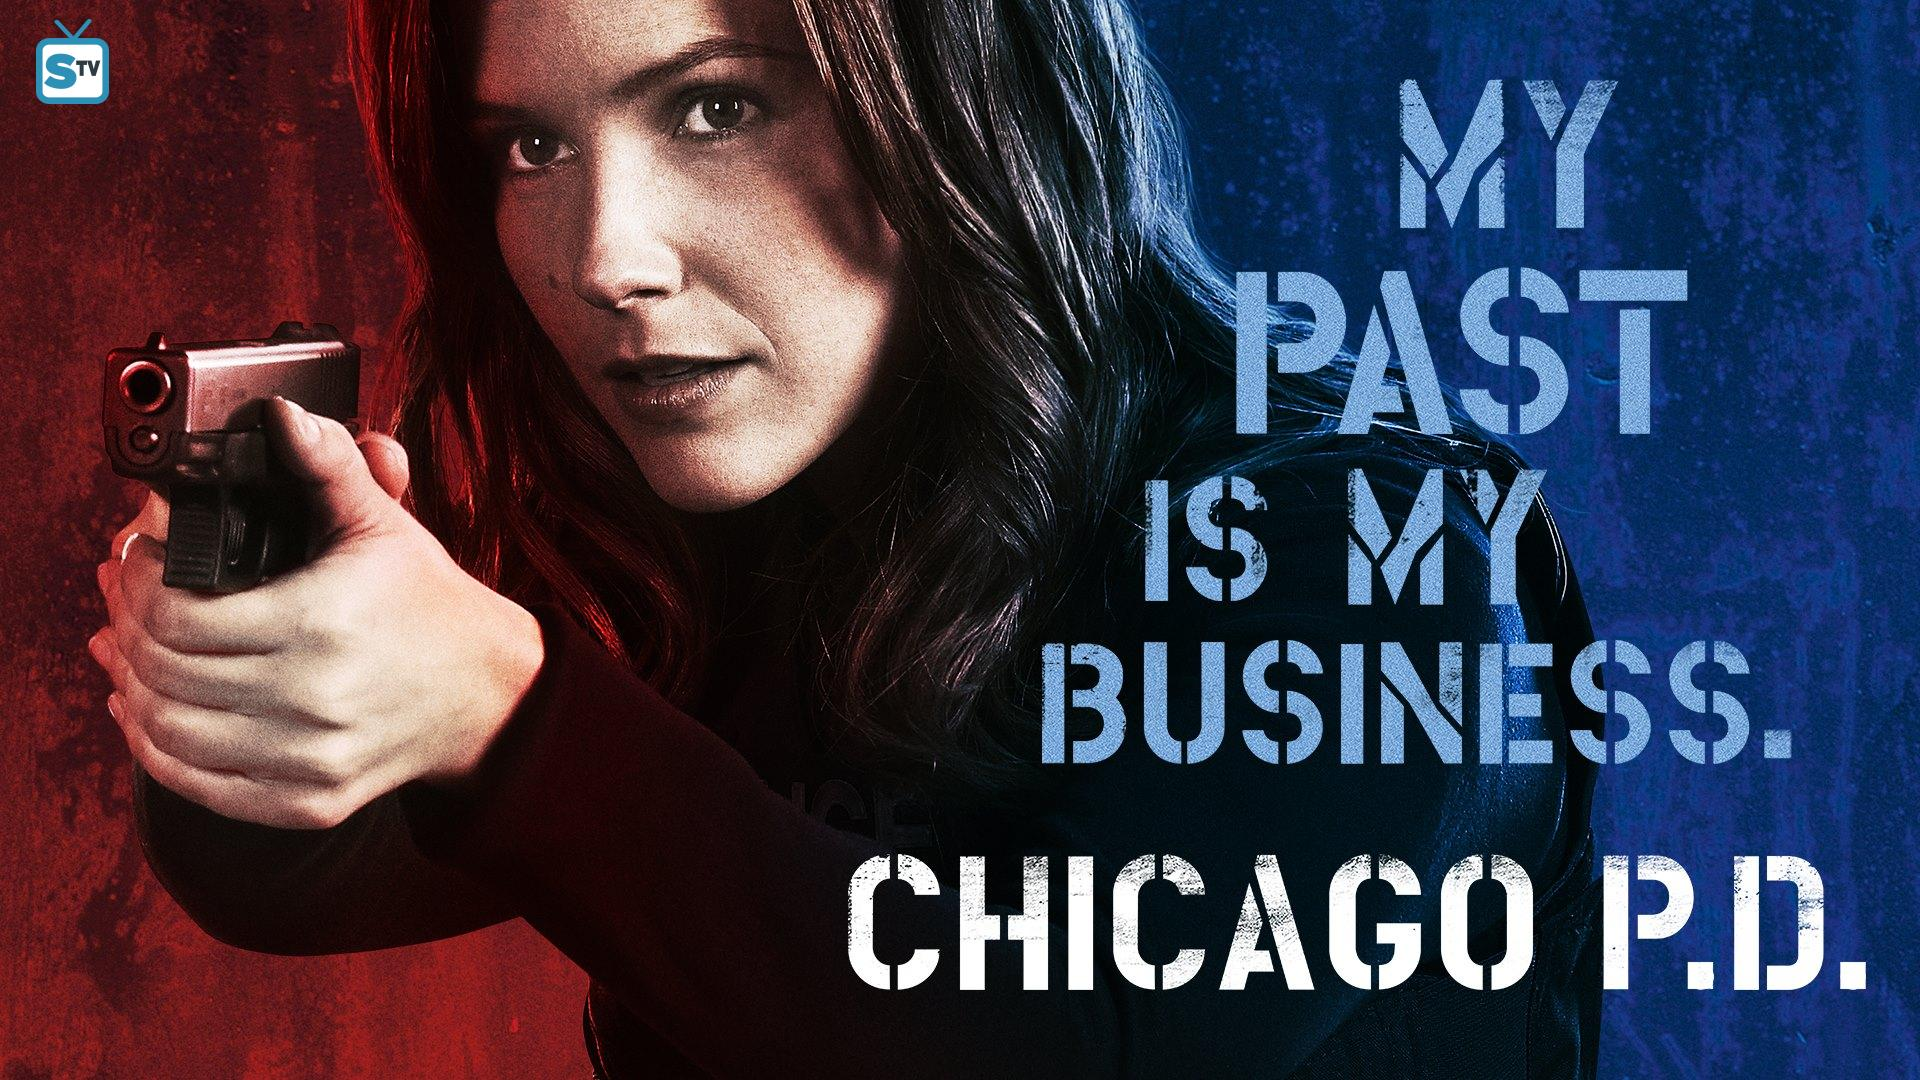 Chicago P.D. Wallpapers High Resolution and Quality Download